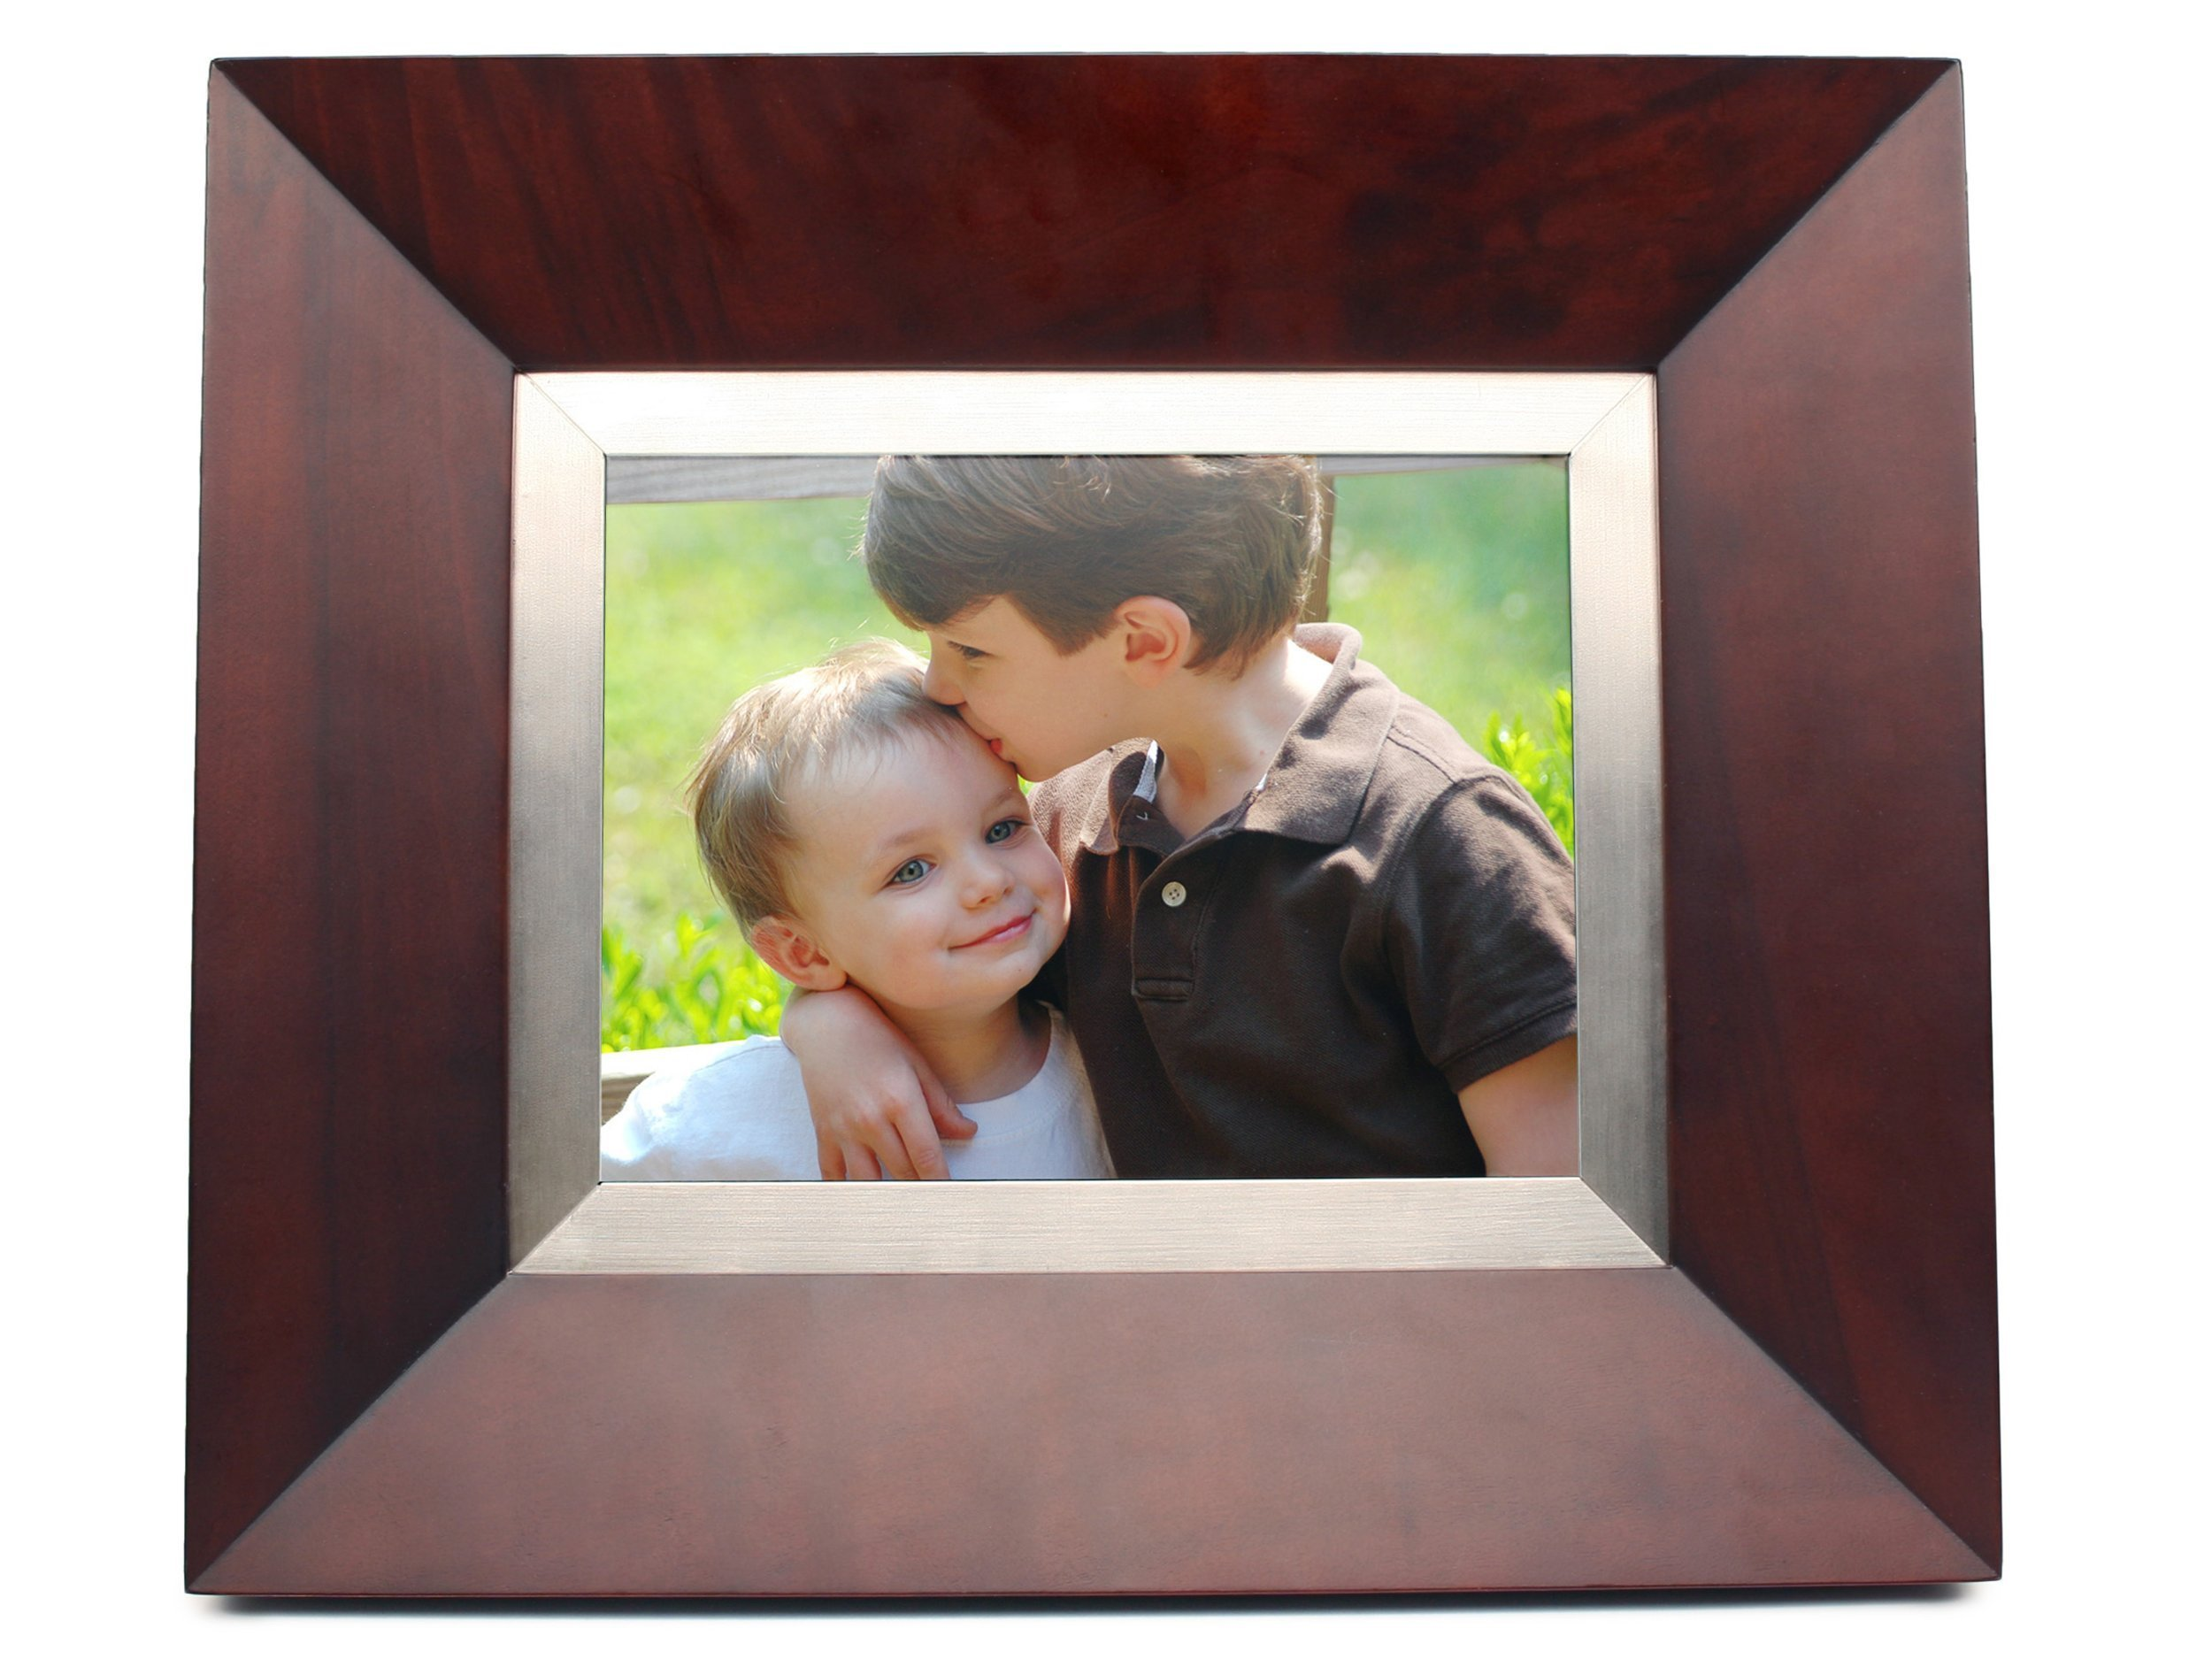 Cagic C8-MAHOGANY 8.4-Inch TFT LCD Digital Picture Frame with TrueVu (Mahogany Wood) by Cagic